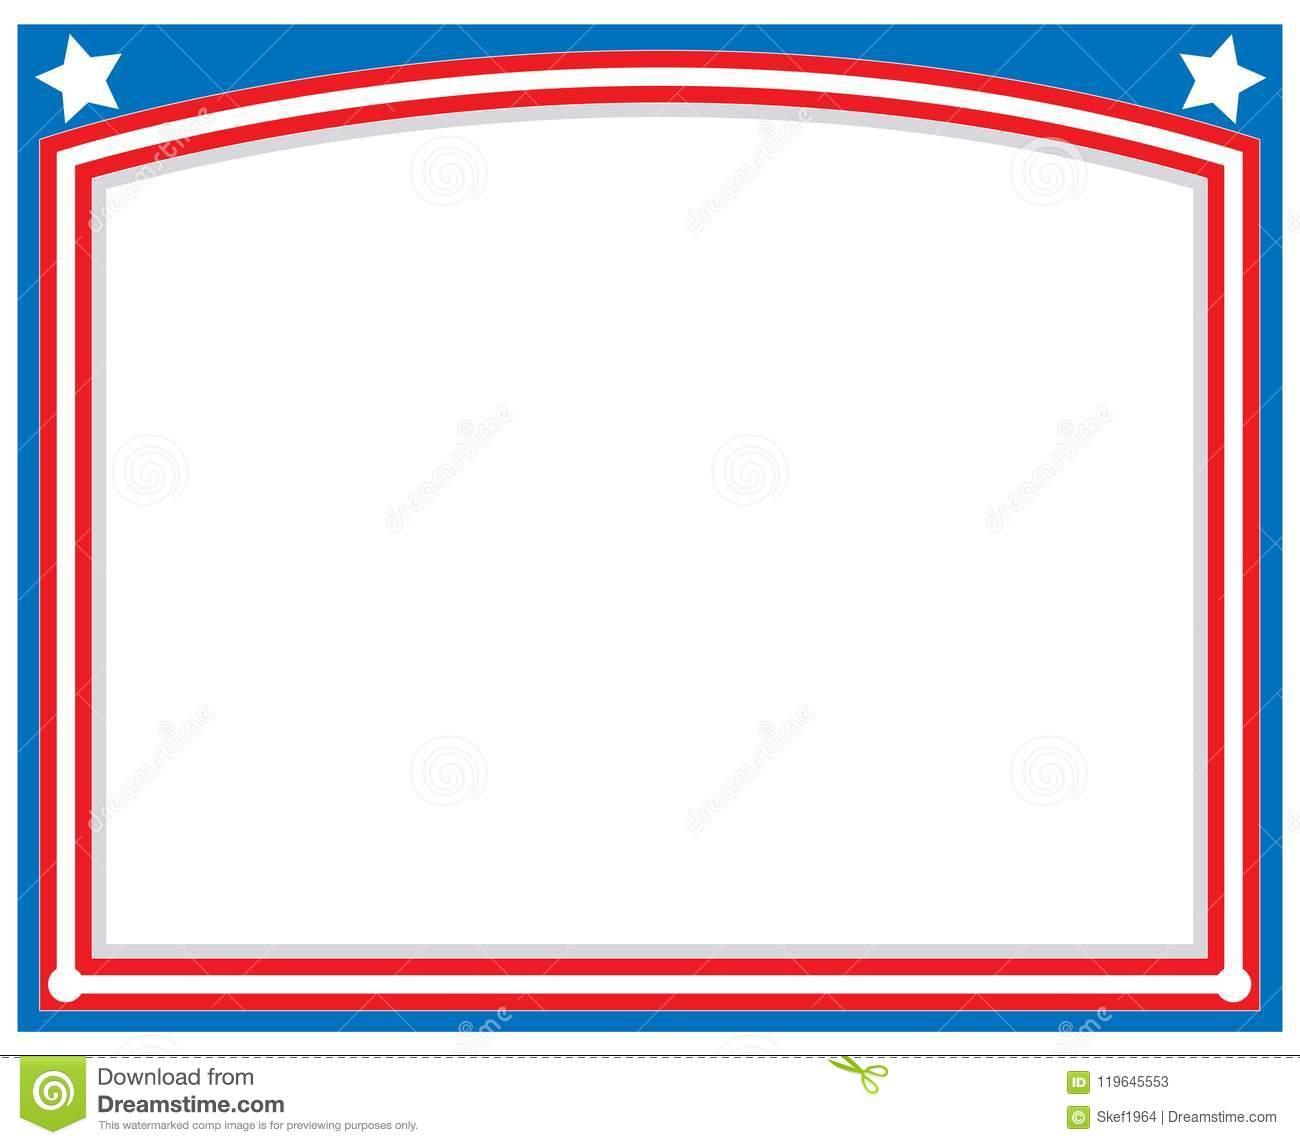 blue red stars usa flag abstract border  stock vector